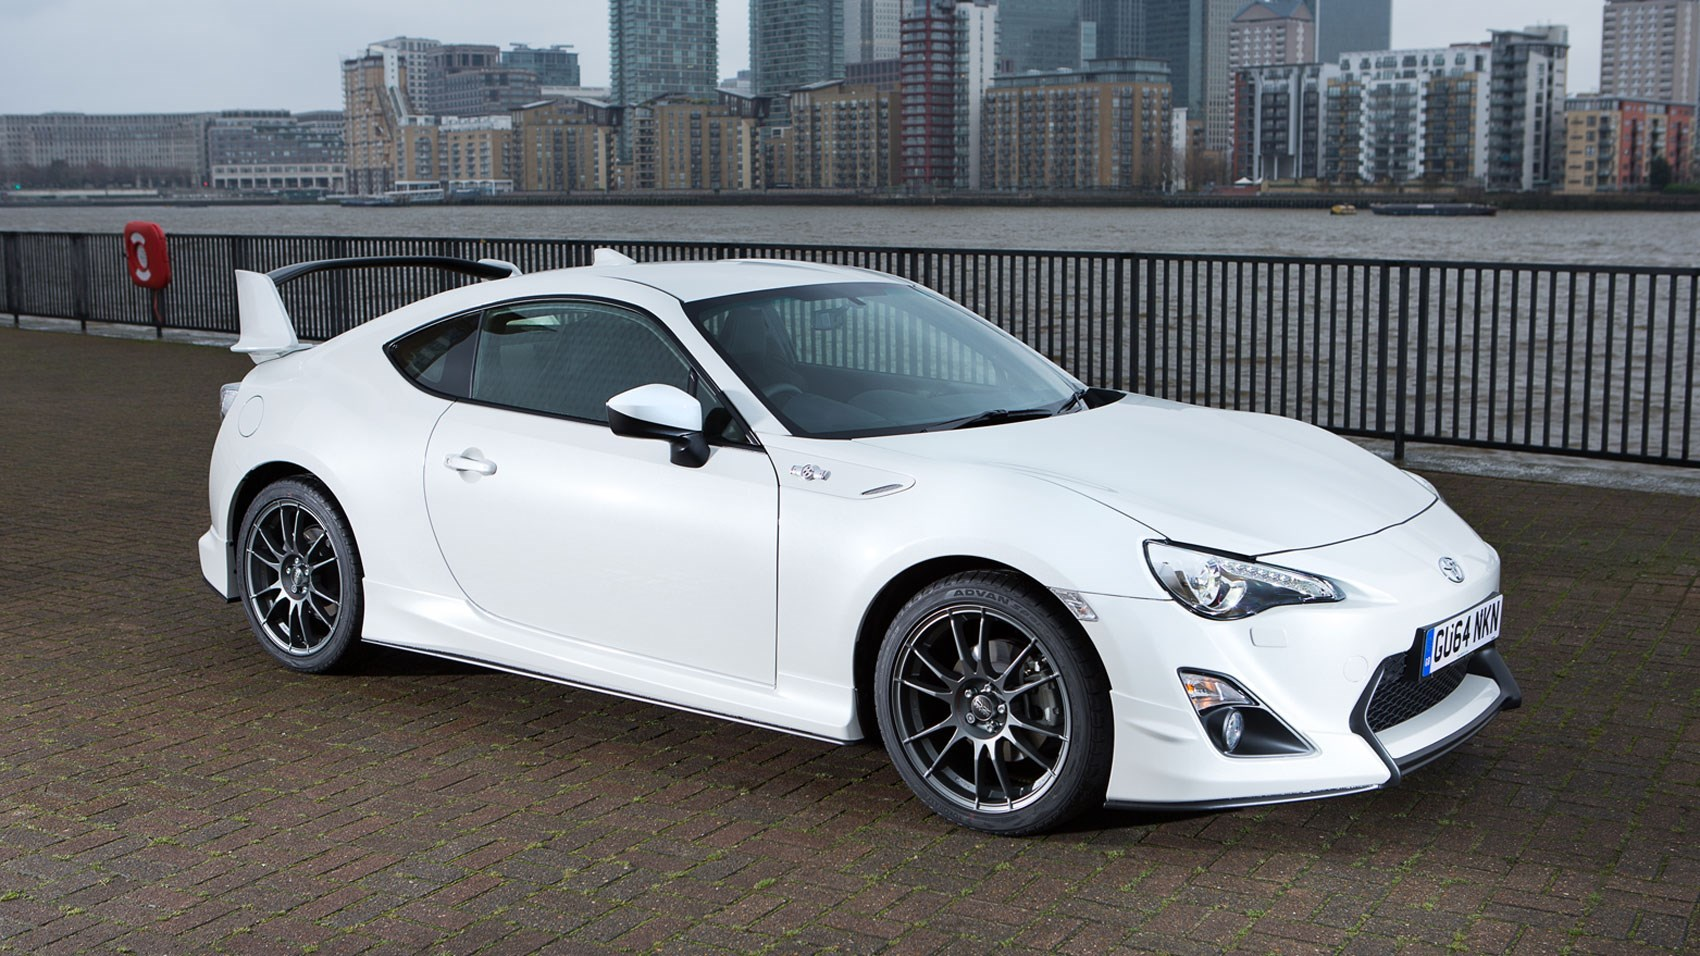 toyota gt86 aero 2015 review by car magazine. Black Bedroom Furniture Sets. Home Design Ideas